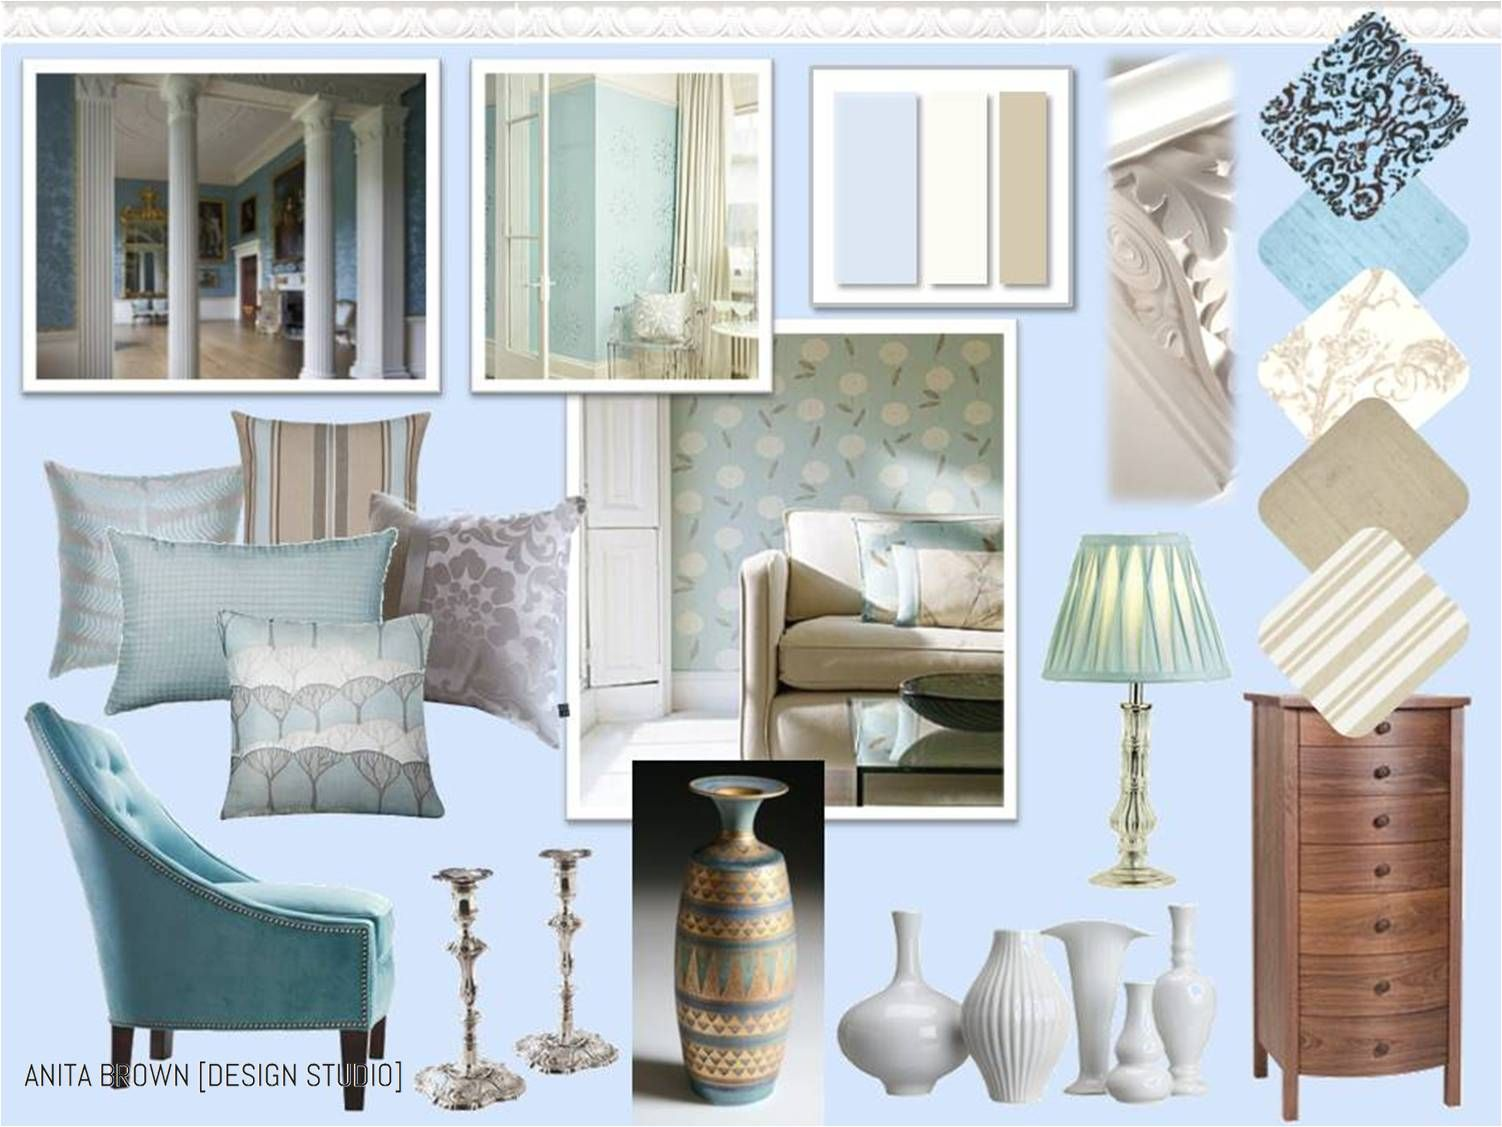 For This Historical Colour Scheme I Have Taken Inspiration From The Georgian Era And Used A Palette Of Powder Blue Soft Chalky White An Earthy